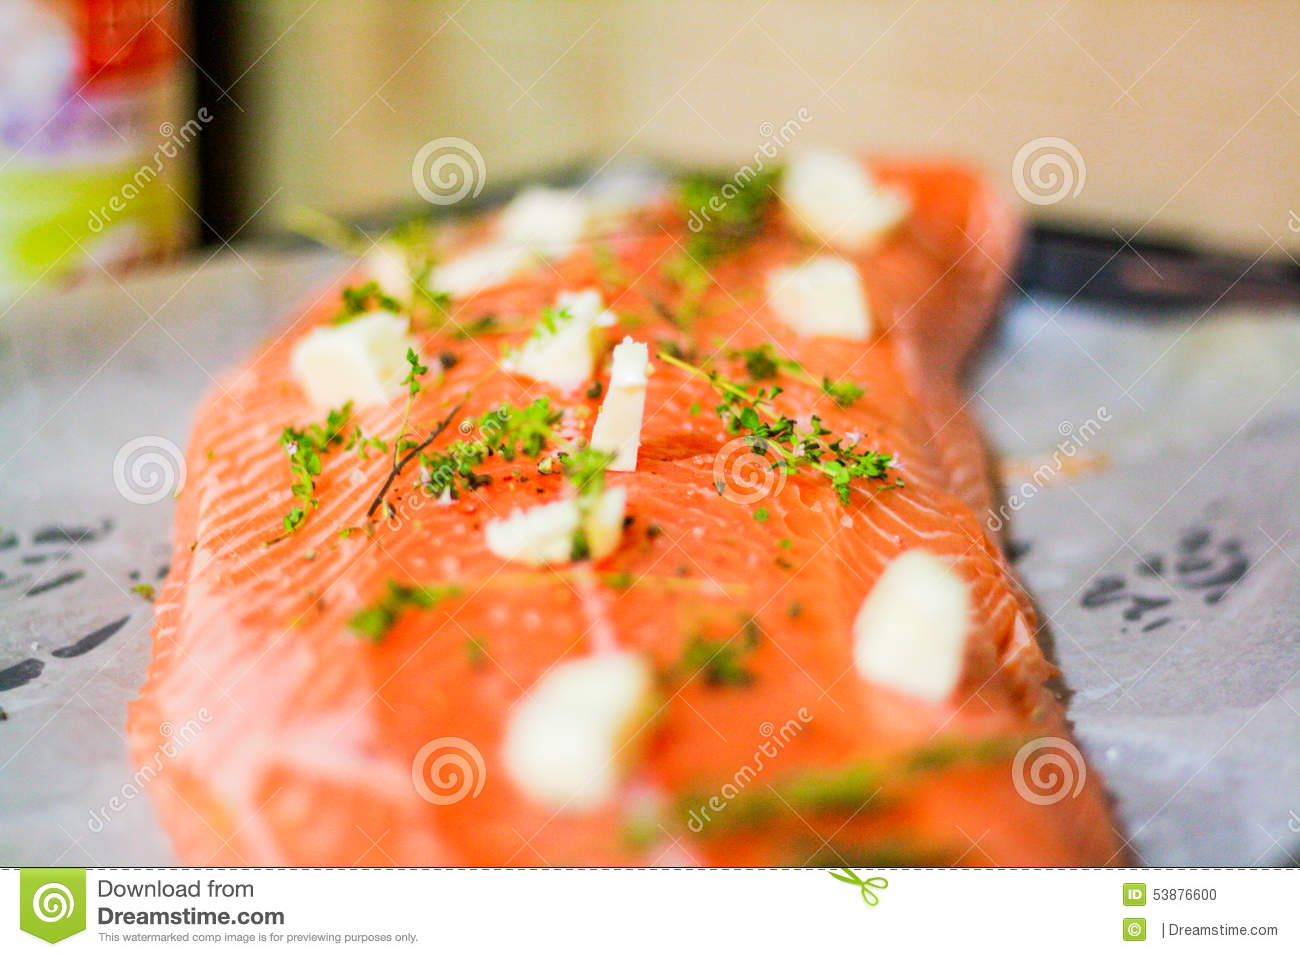 Salmon fish before putting it in the oven with some butter and thyme.